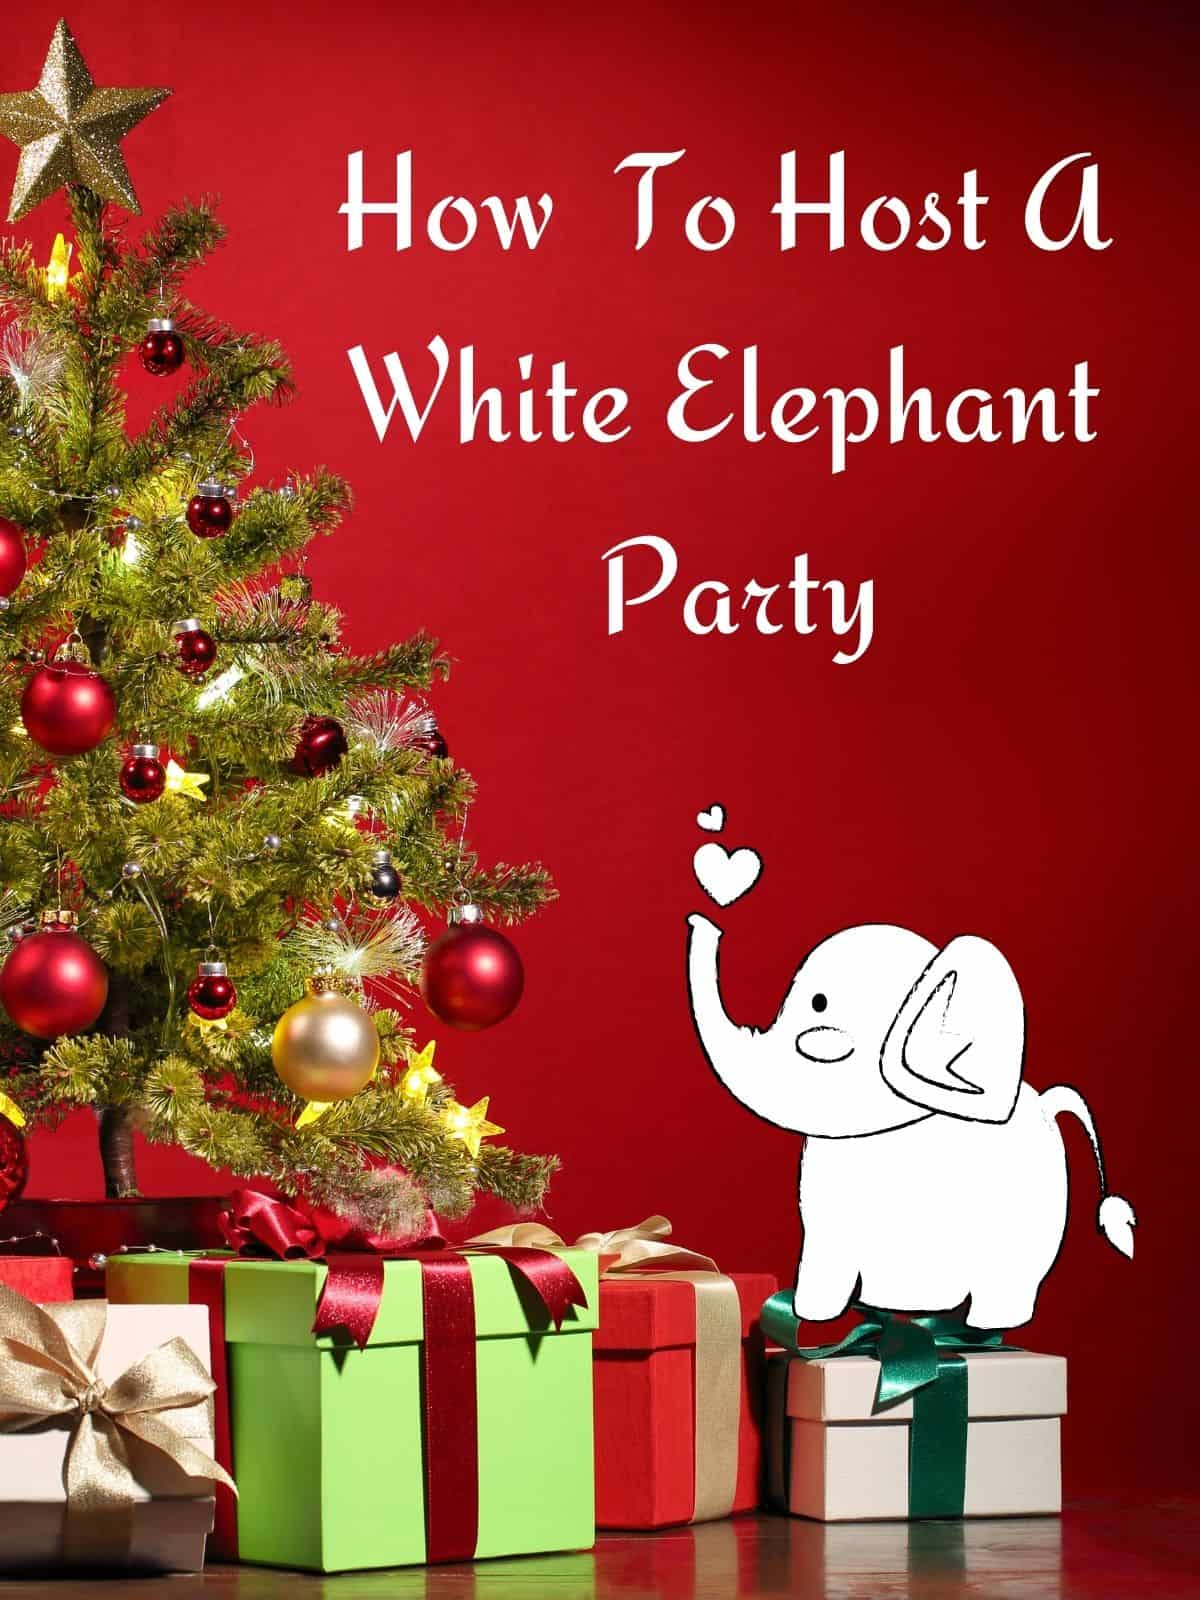 white elephant on presents by christmas tree